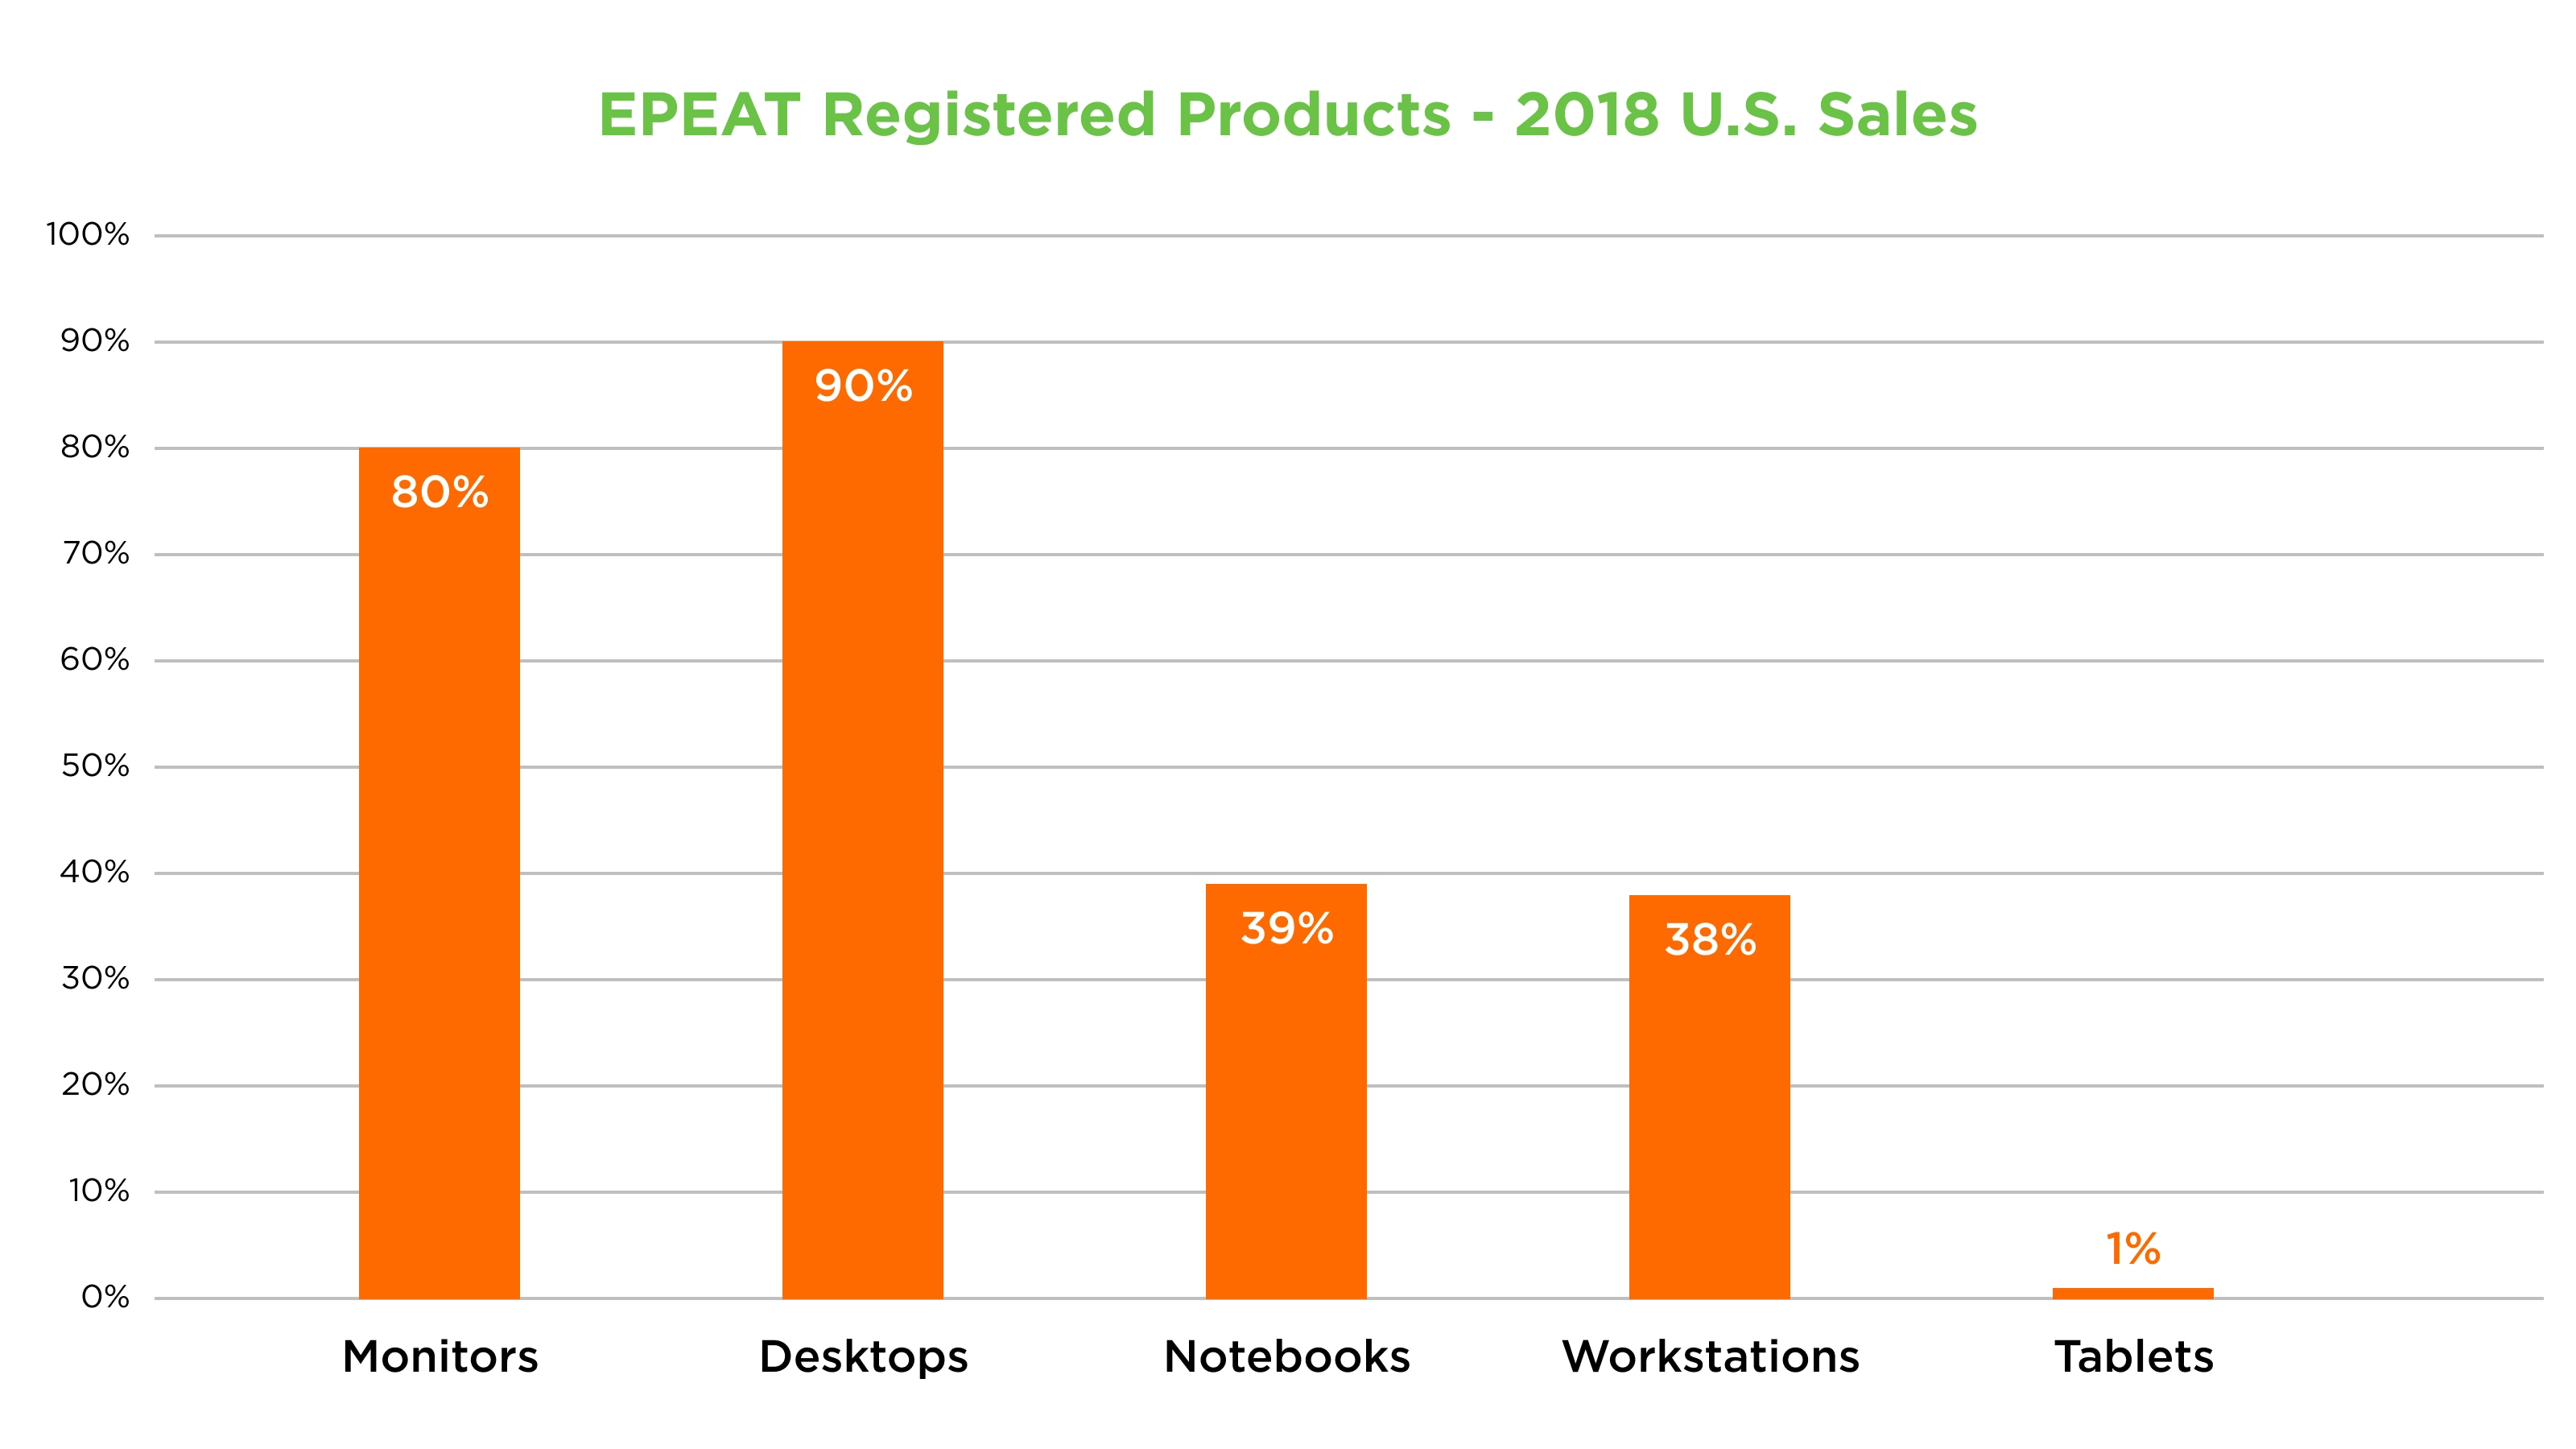 EPEAT Registered Product - 2018 US Sales Chart - Monitors: 80%, Desktops: 90%, Notebooks: 39%, Workstations: 38%, Tablets: 1%